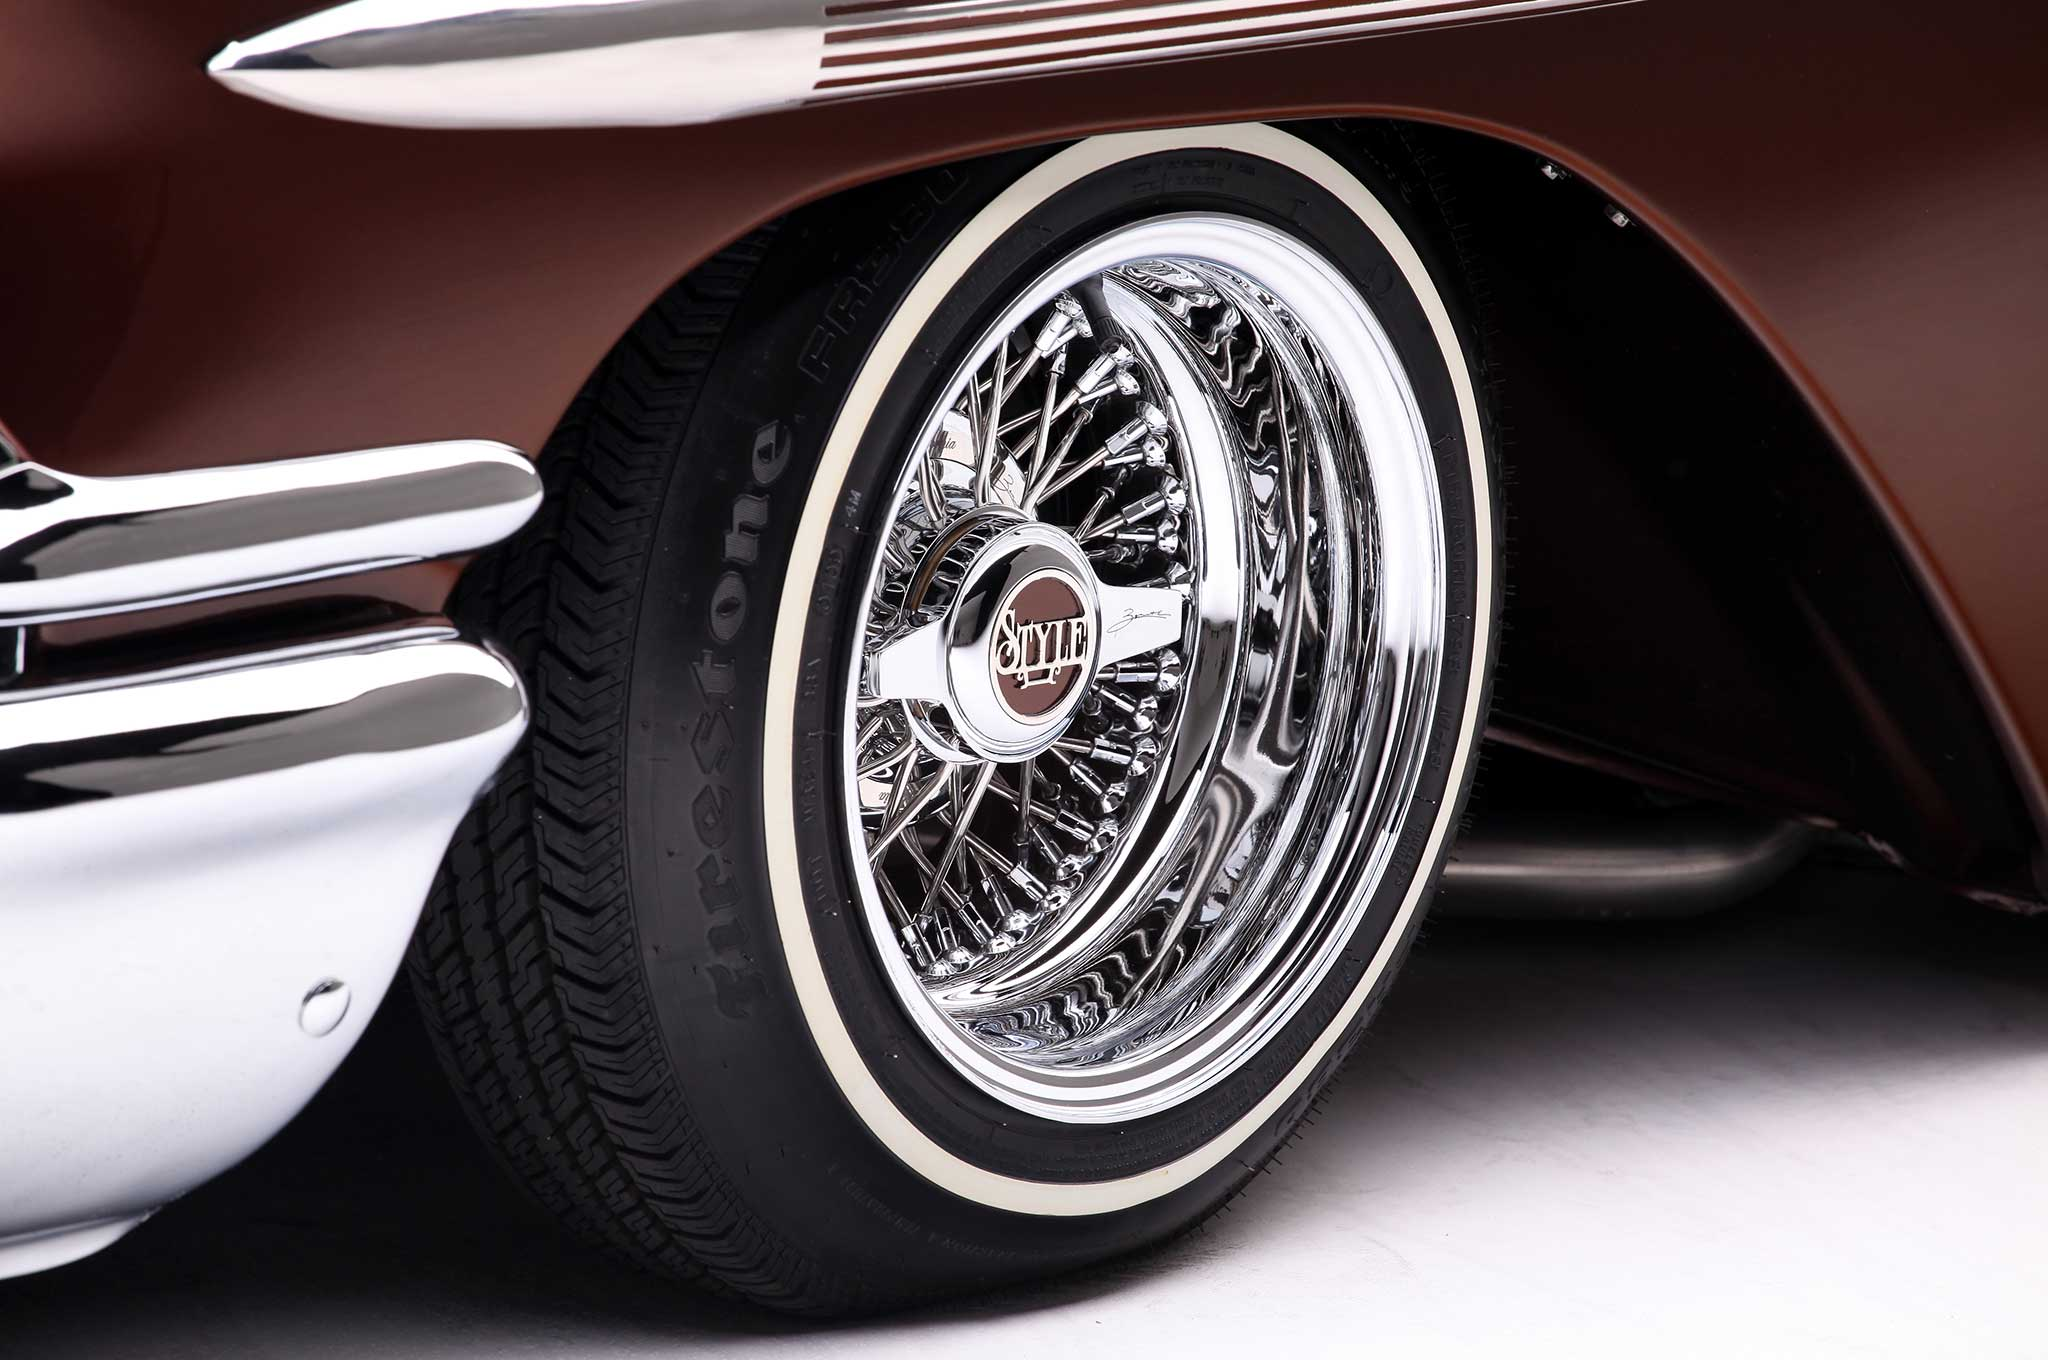 1958 Chevrolet Impala - Gentleman's Style of a '58 - Lowrider